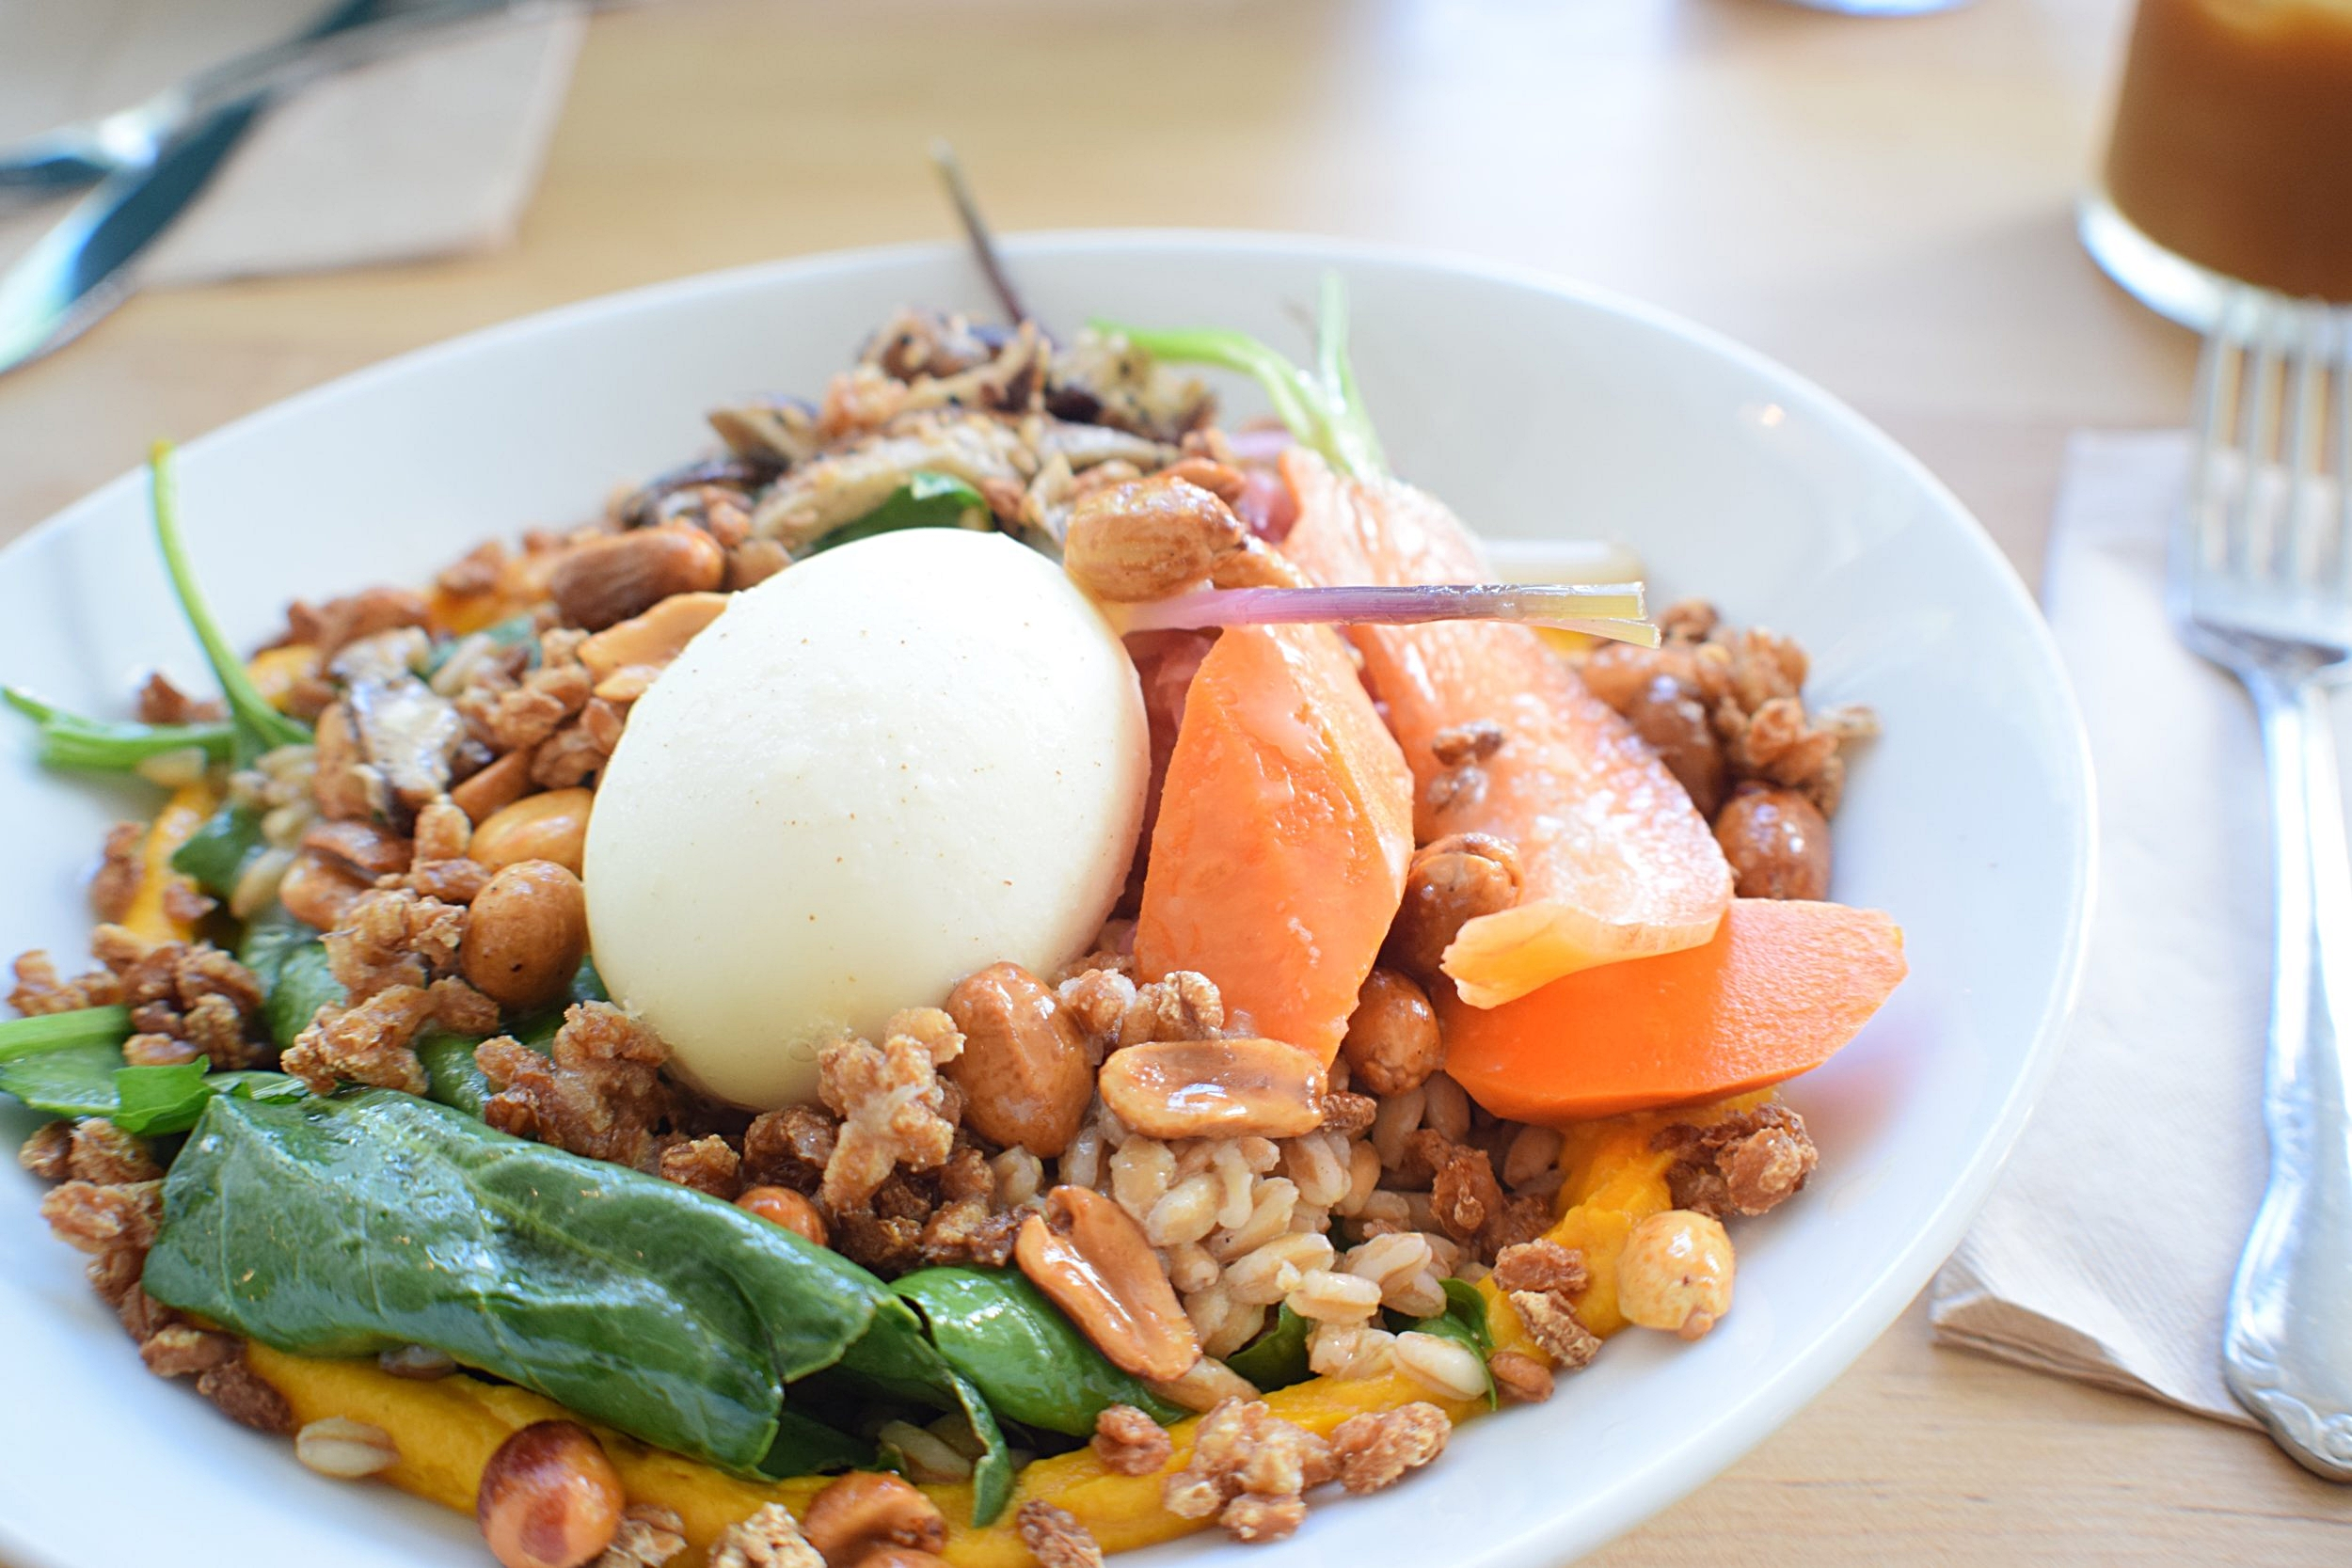 A breakfast grain bowl with jammy egg and miso carrot puree at The Grange Community Kitchen